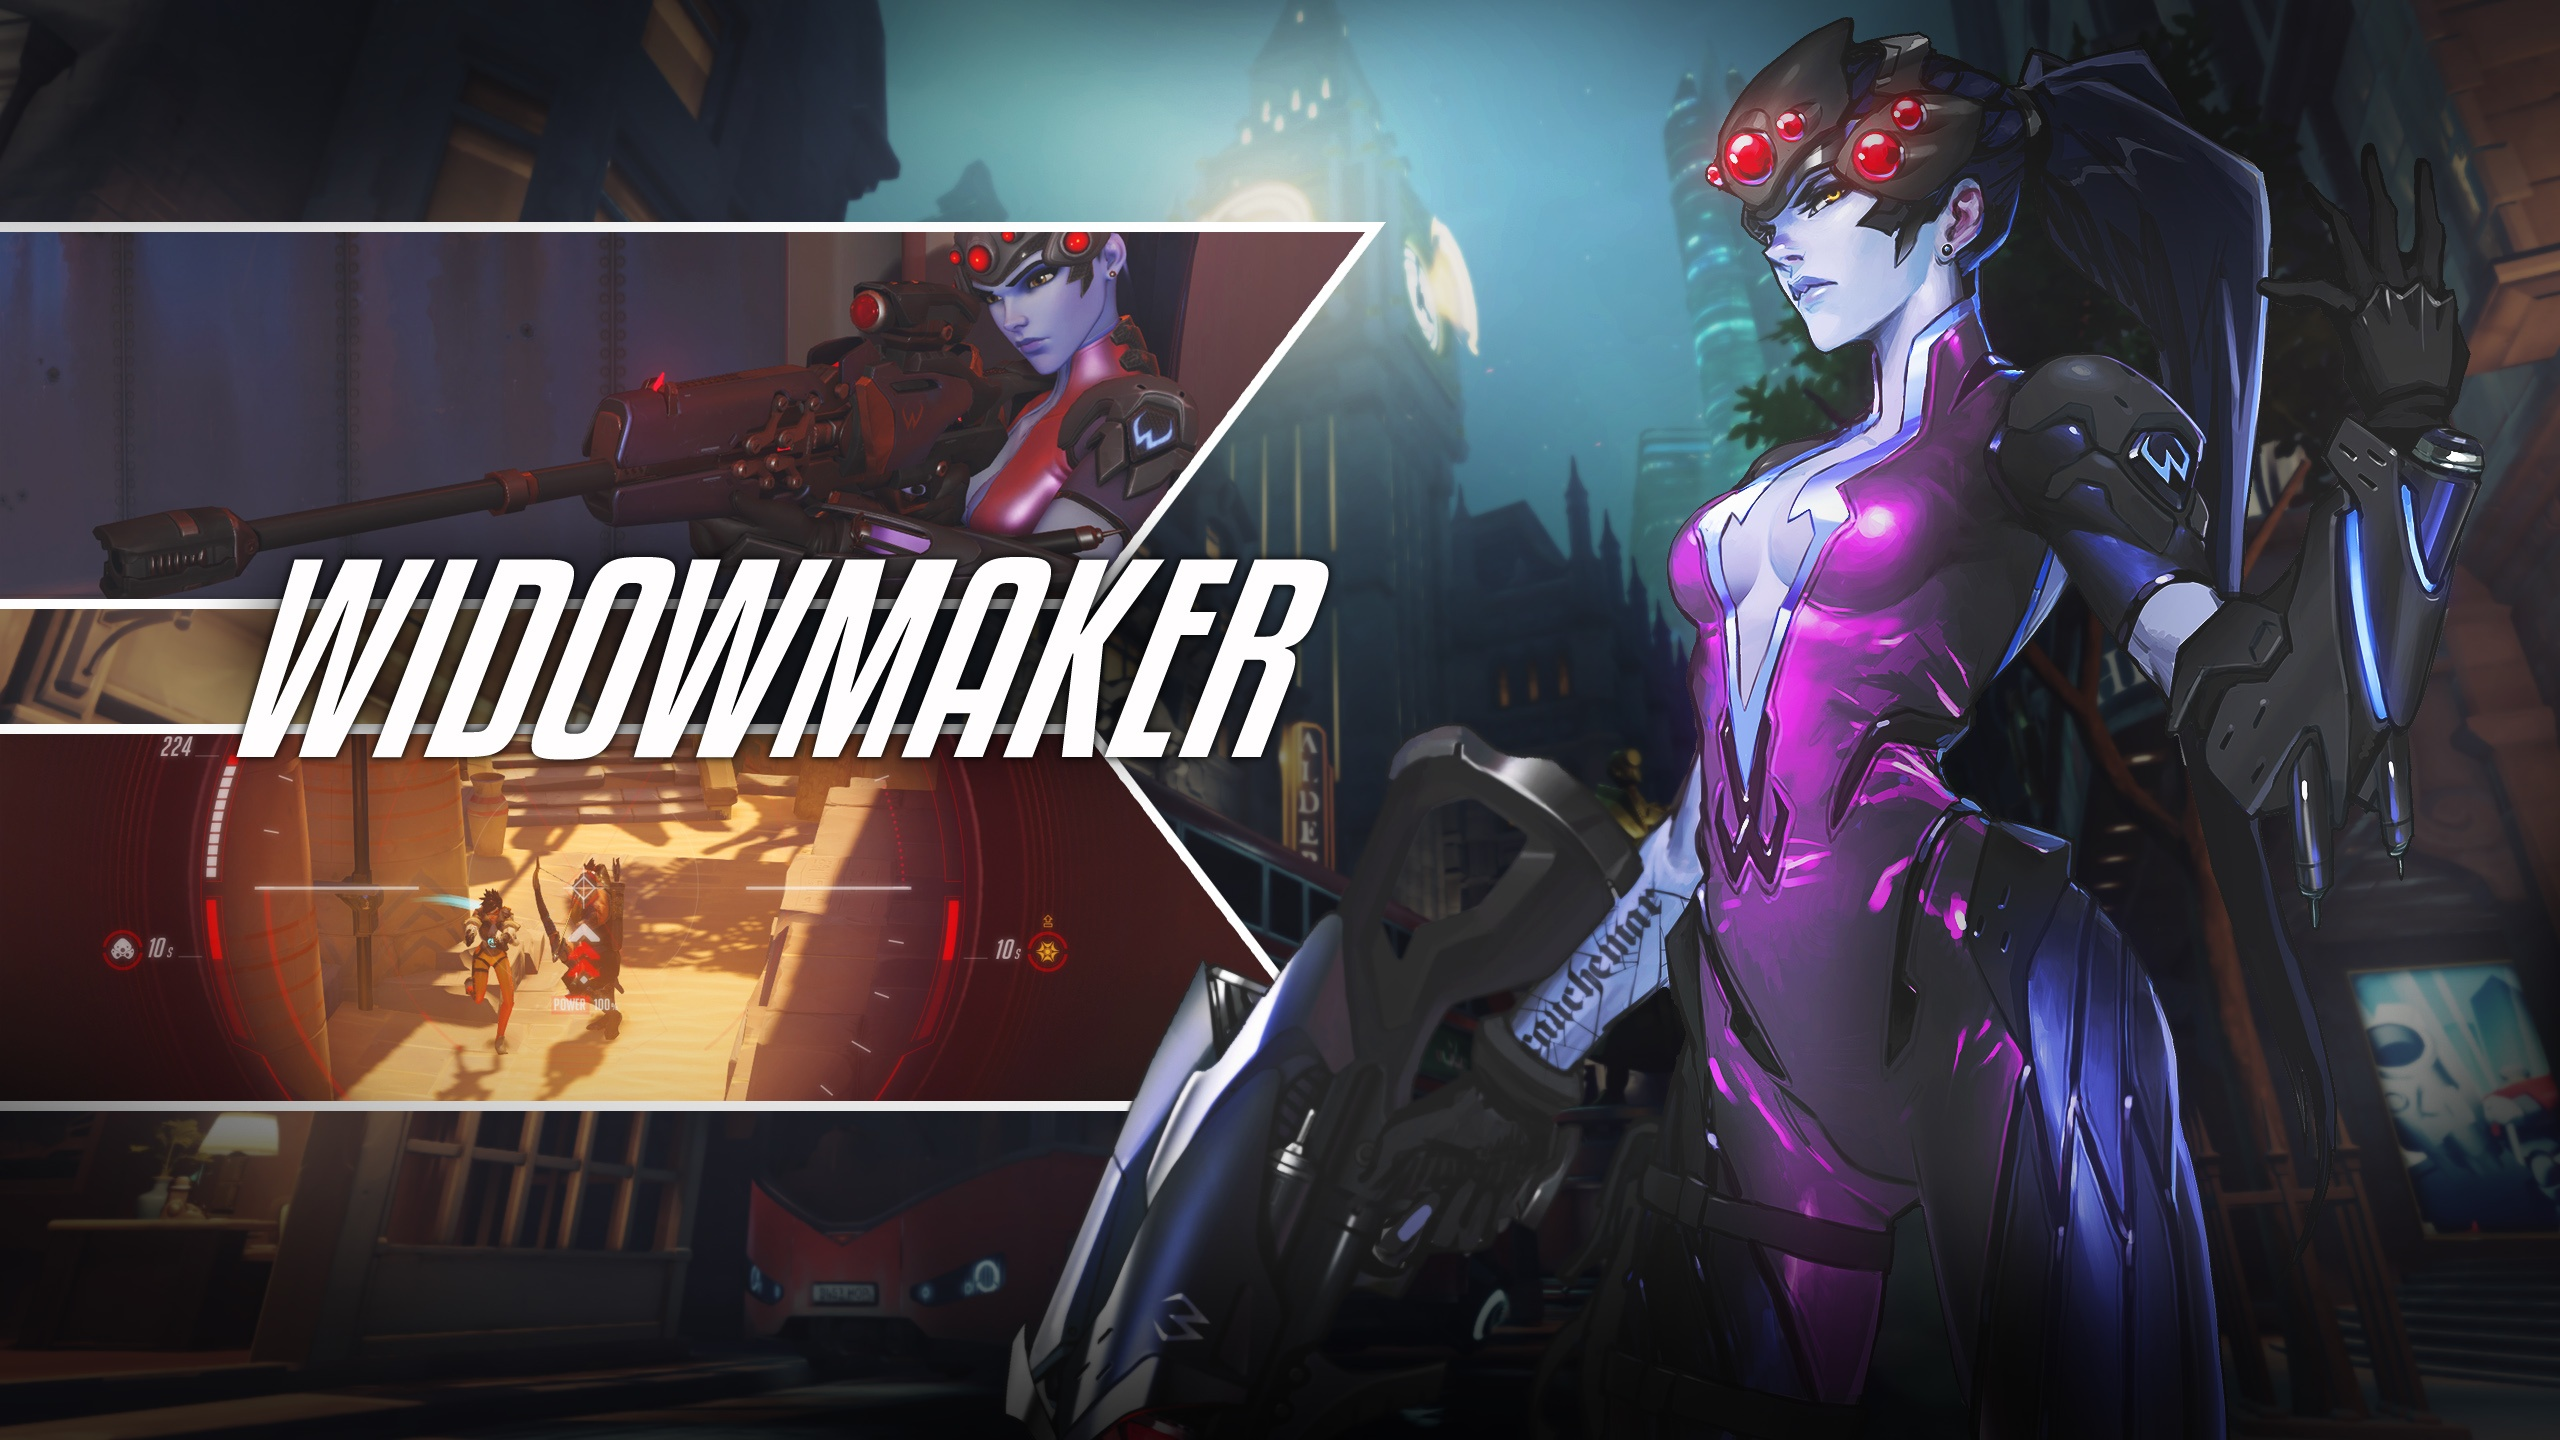 Widowmaker Overwatch Wallpapers HD Wallpapers 2560x1440